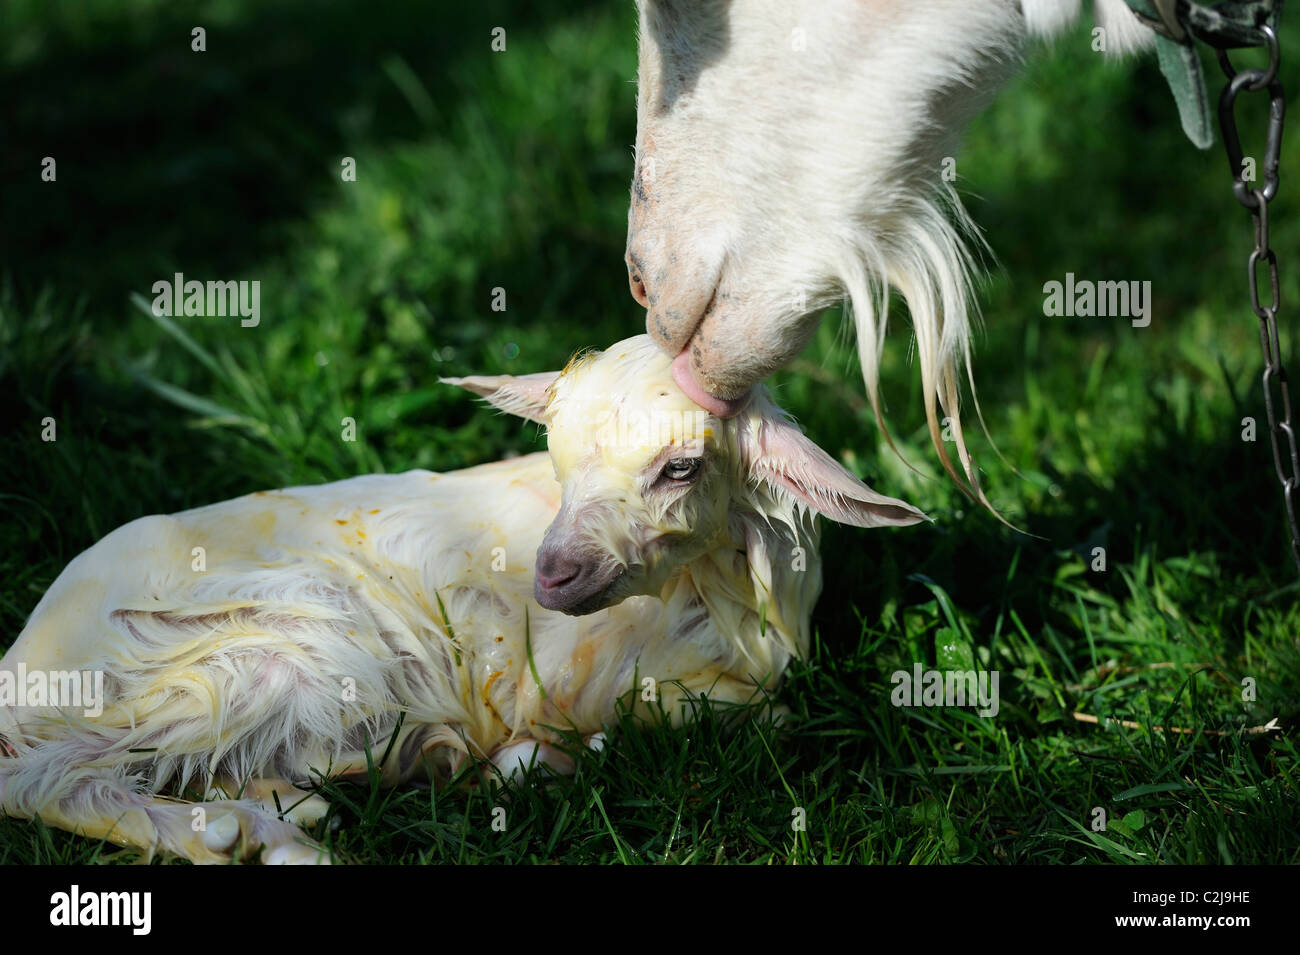 Stock photo of a Nanny goat cleaning her newborn saanen kid. - Stock Image